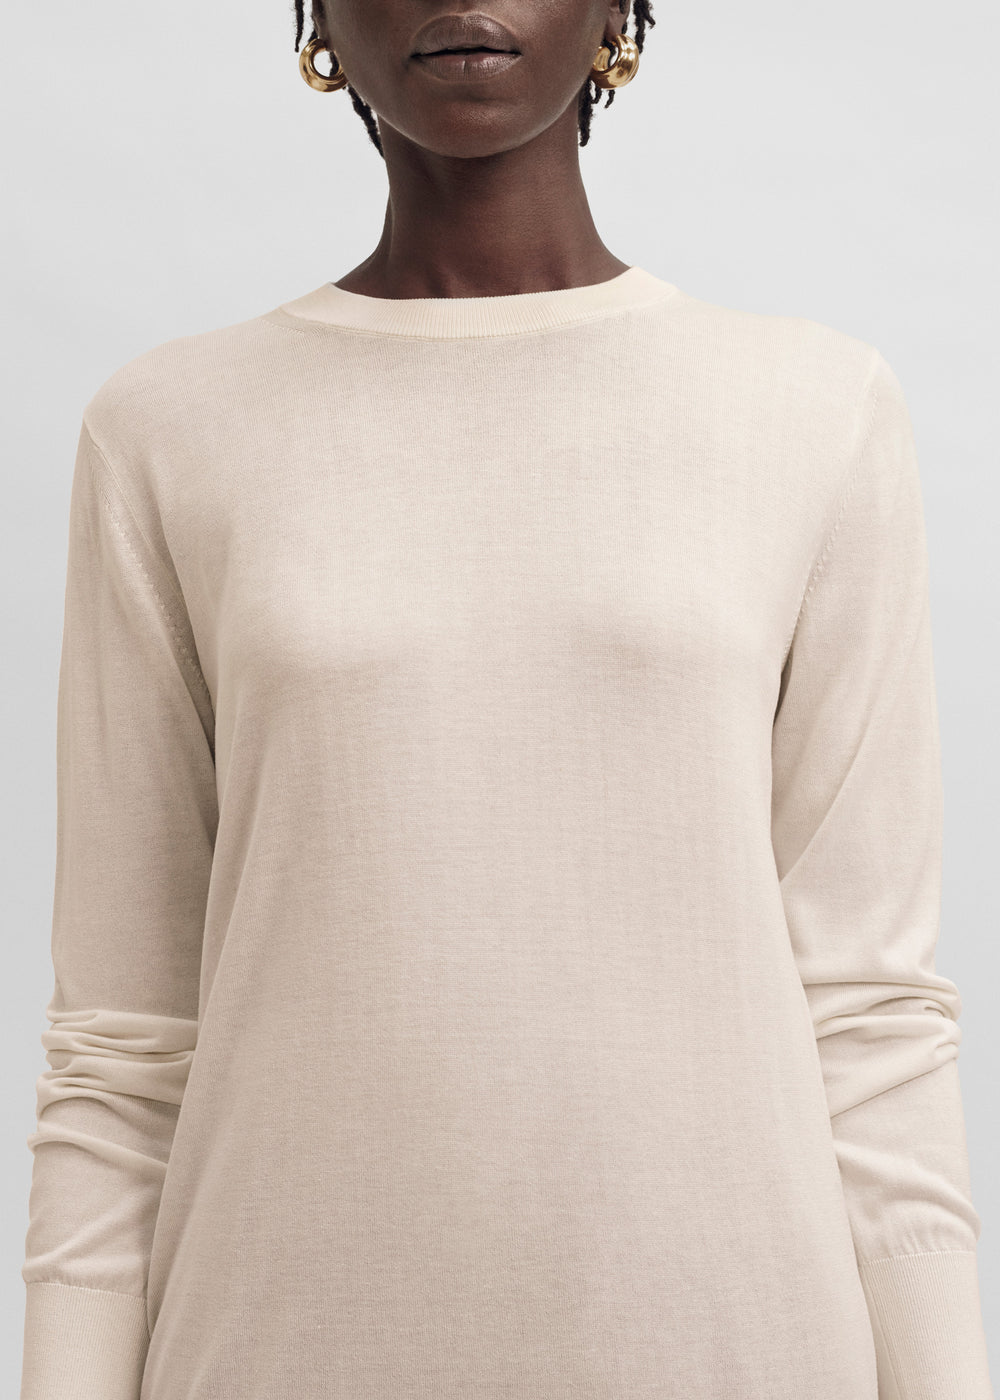 Slim Round Neck Knit In Silk Knit - Black in Taupe by Co Collections